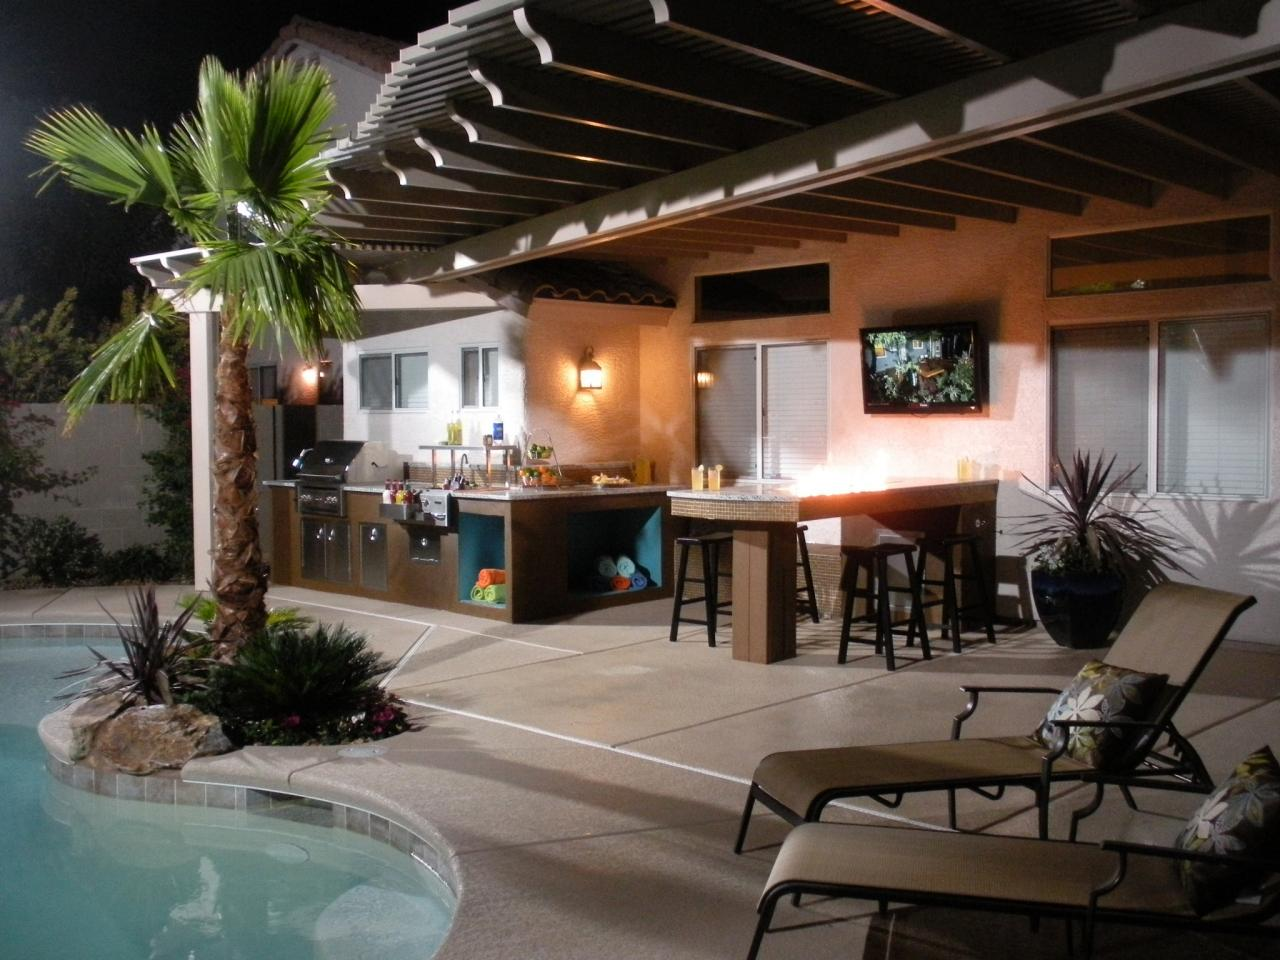 Pool And Outdoor Kitchen Designs Outdoor Kitchen Design Ideas Pictures Tips & Expert Advice  Hgtv